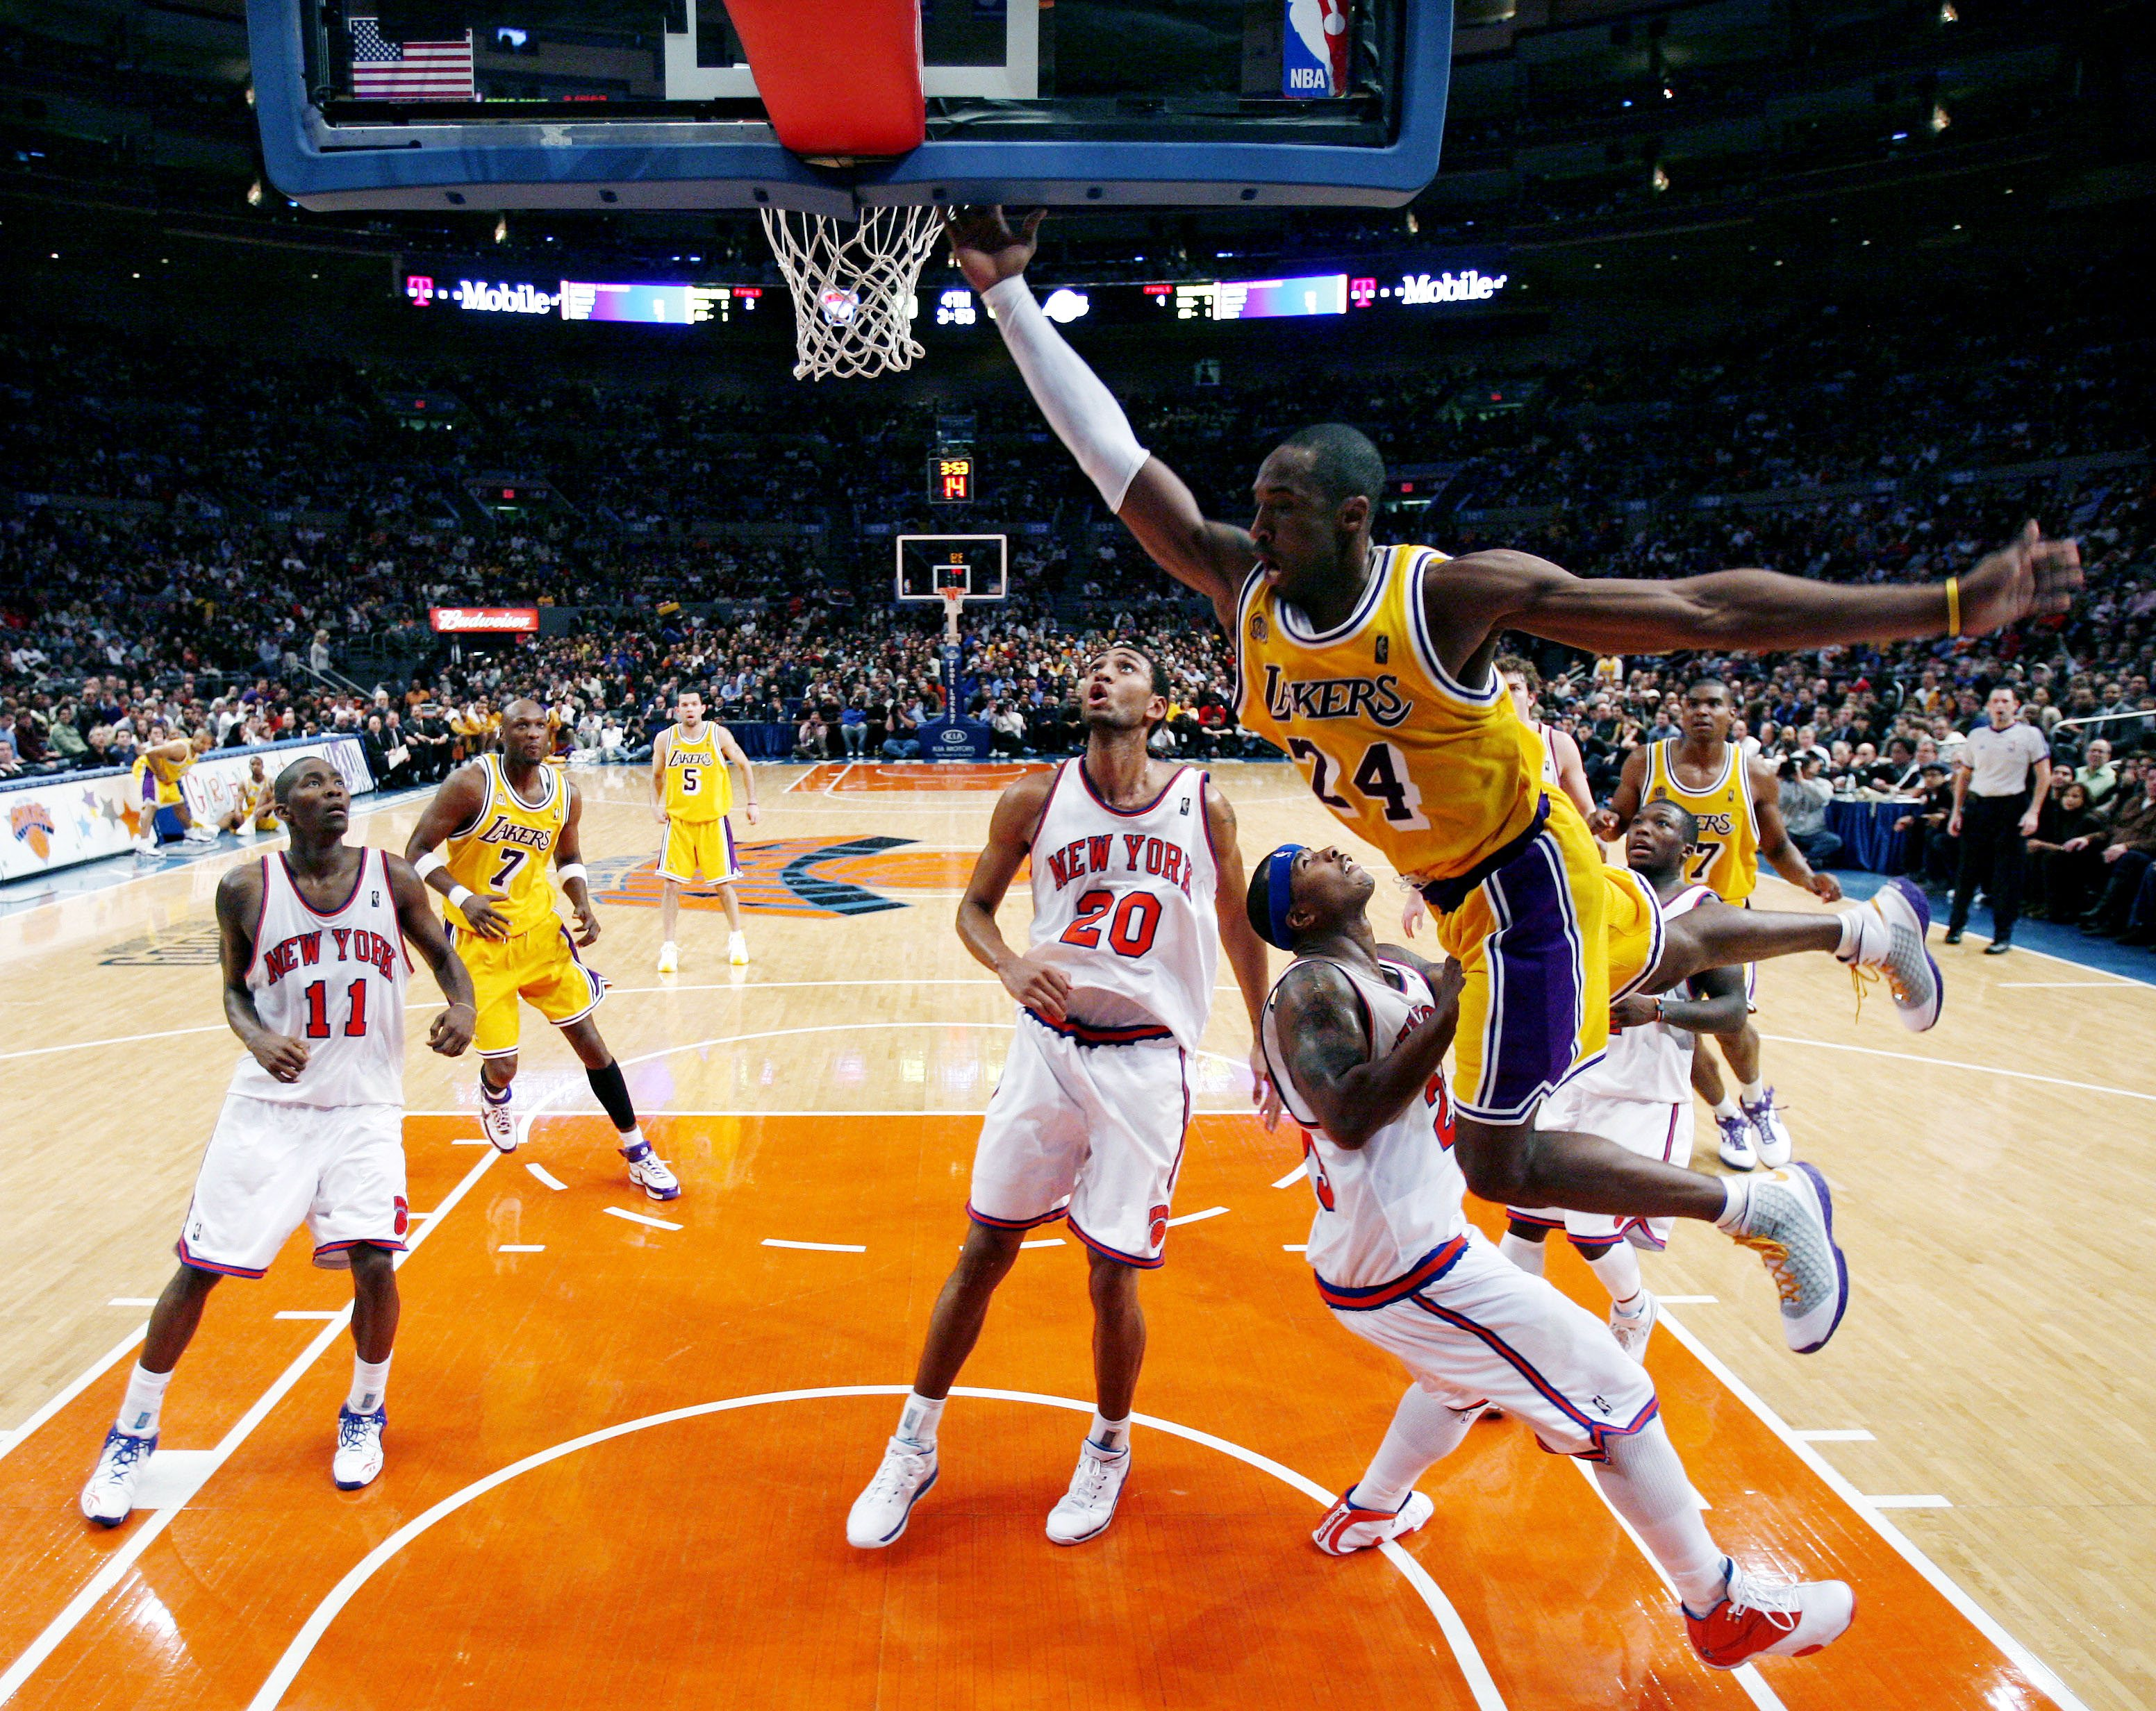 Los Angeles Lakers guard Kobe Bryant (24) drives over New York Knicks guard Quentin Richarson as he tries to score in the fourth quarter of their NBA ...